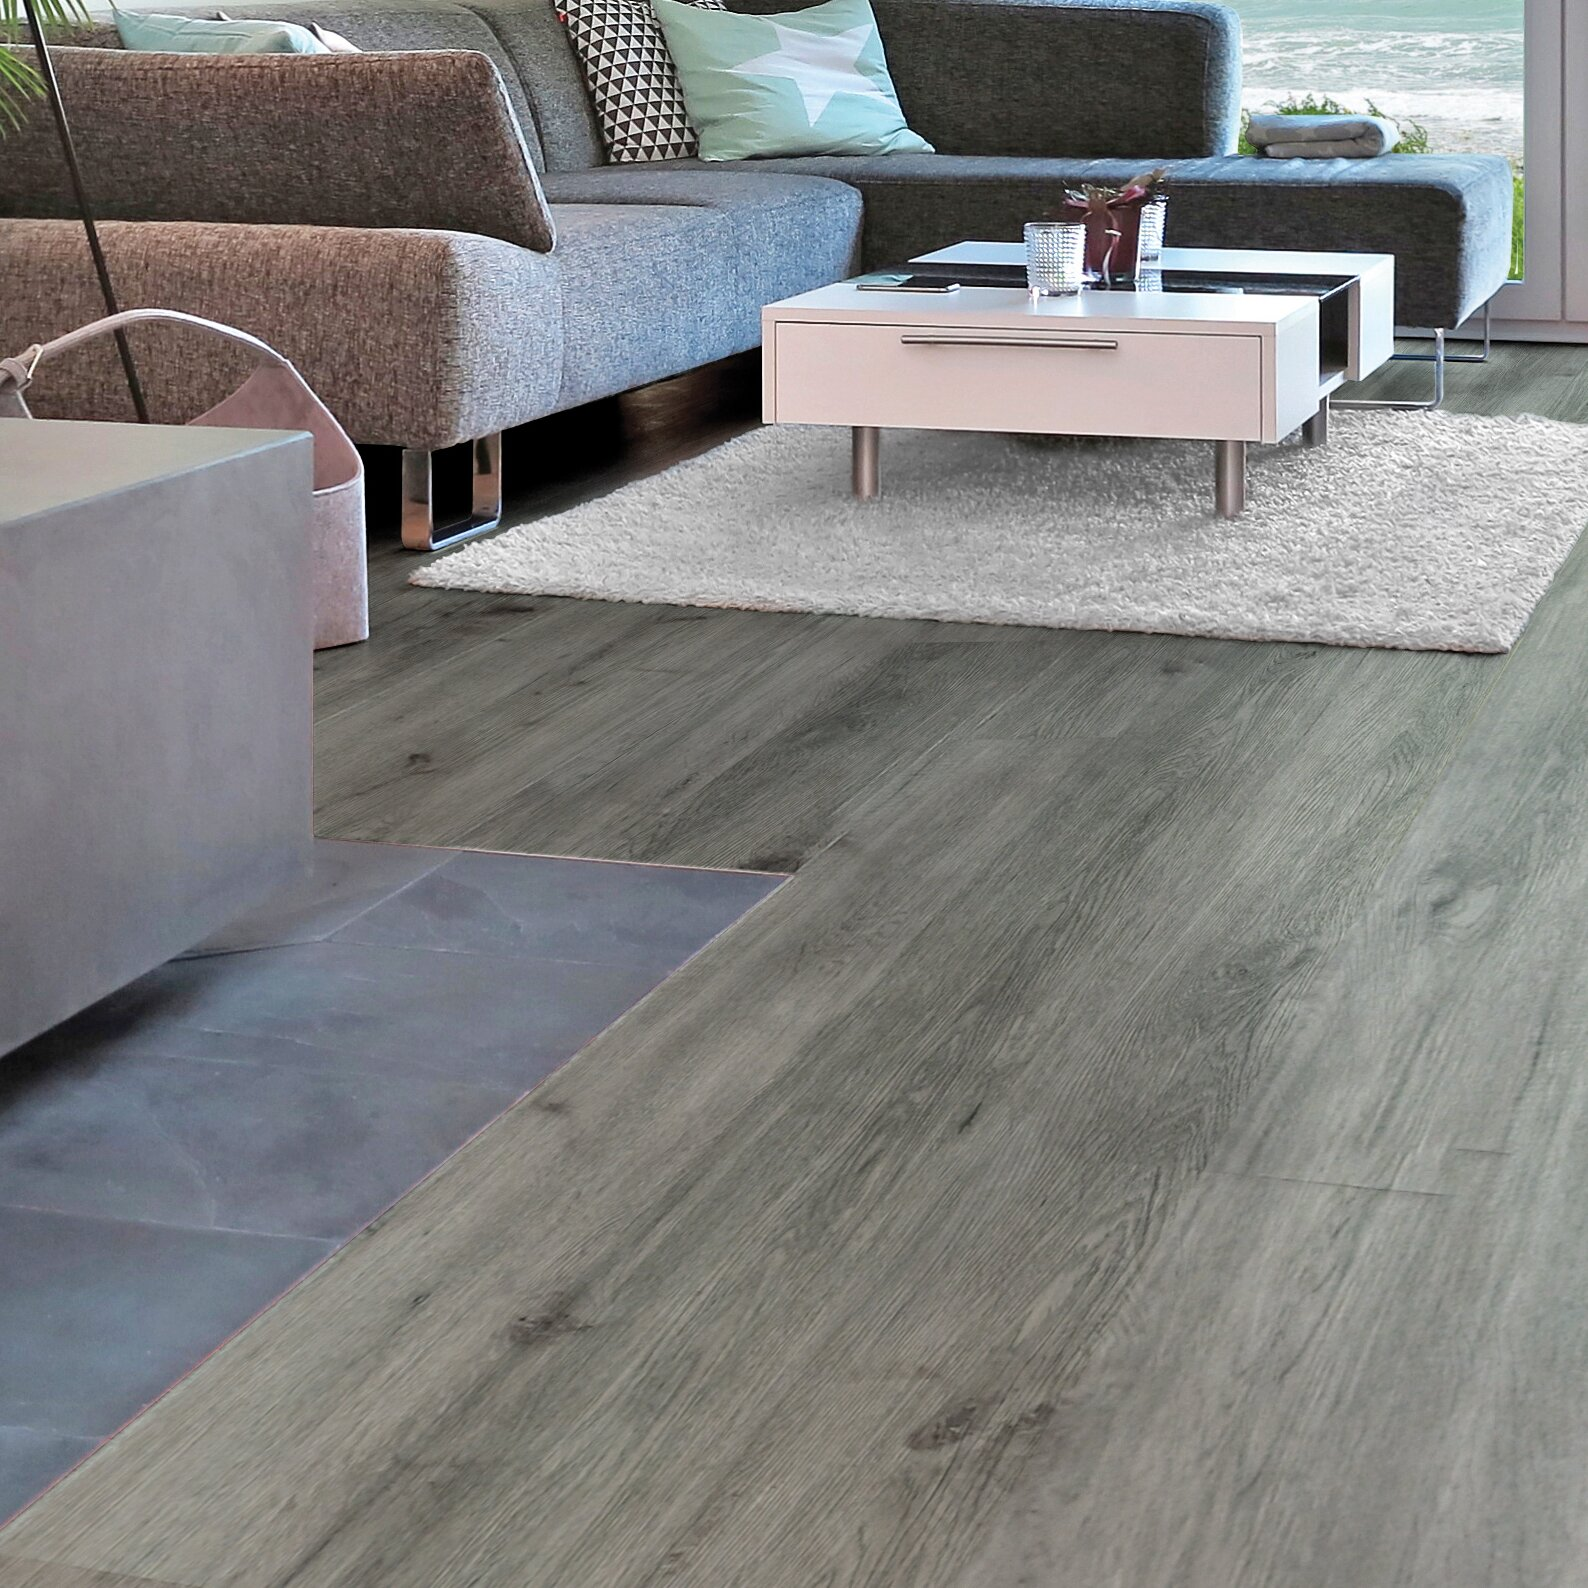 Albero Valley Seaside 7 Quot X 48 Quot 6 3mm Luxury Vinyl Plank In